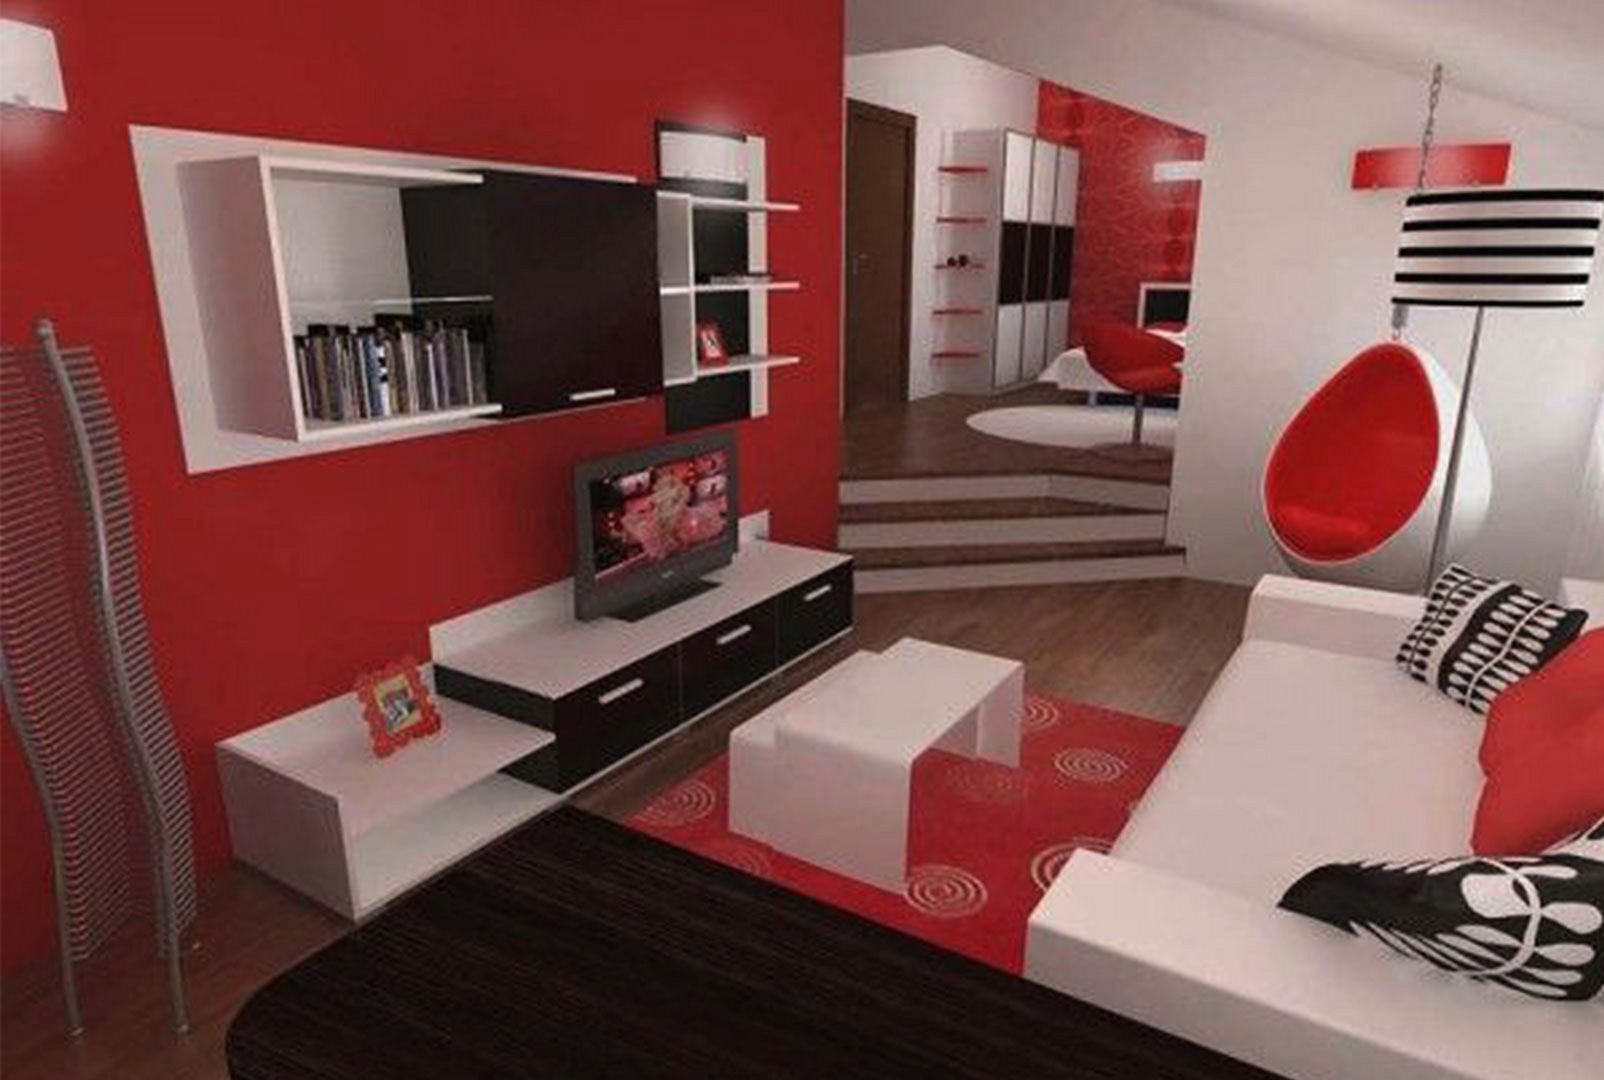 61 Best Room Decoration Ideas On A Budget Freshouz Com Living Room Red Red Living Room Decor Black And White Living Room